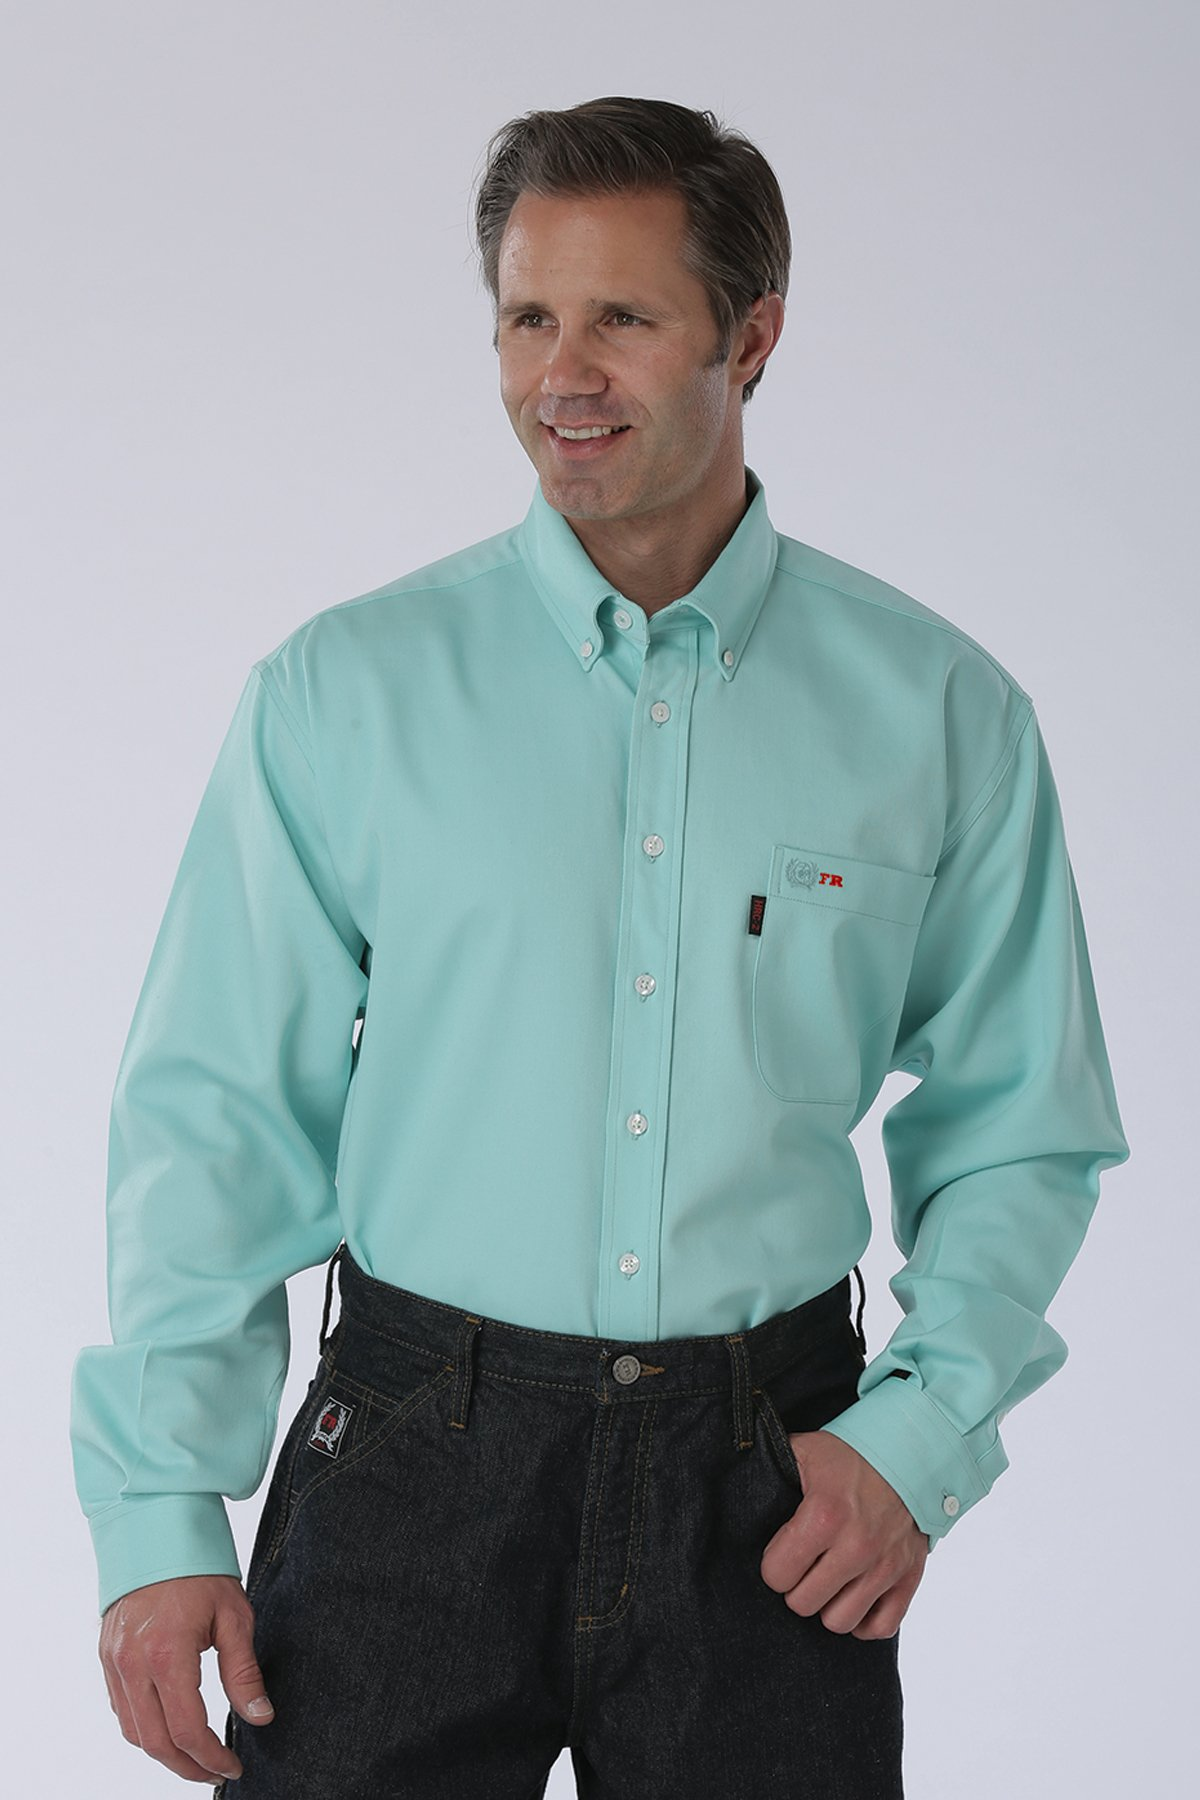 CINCH FR WRX LIGHTWEIGHT WORK SHIRT IN TURQUOISE-Cinch WRX